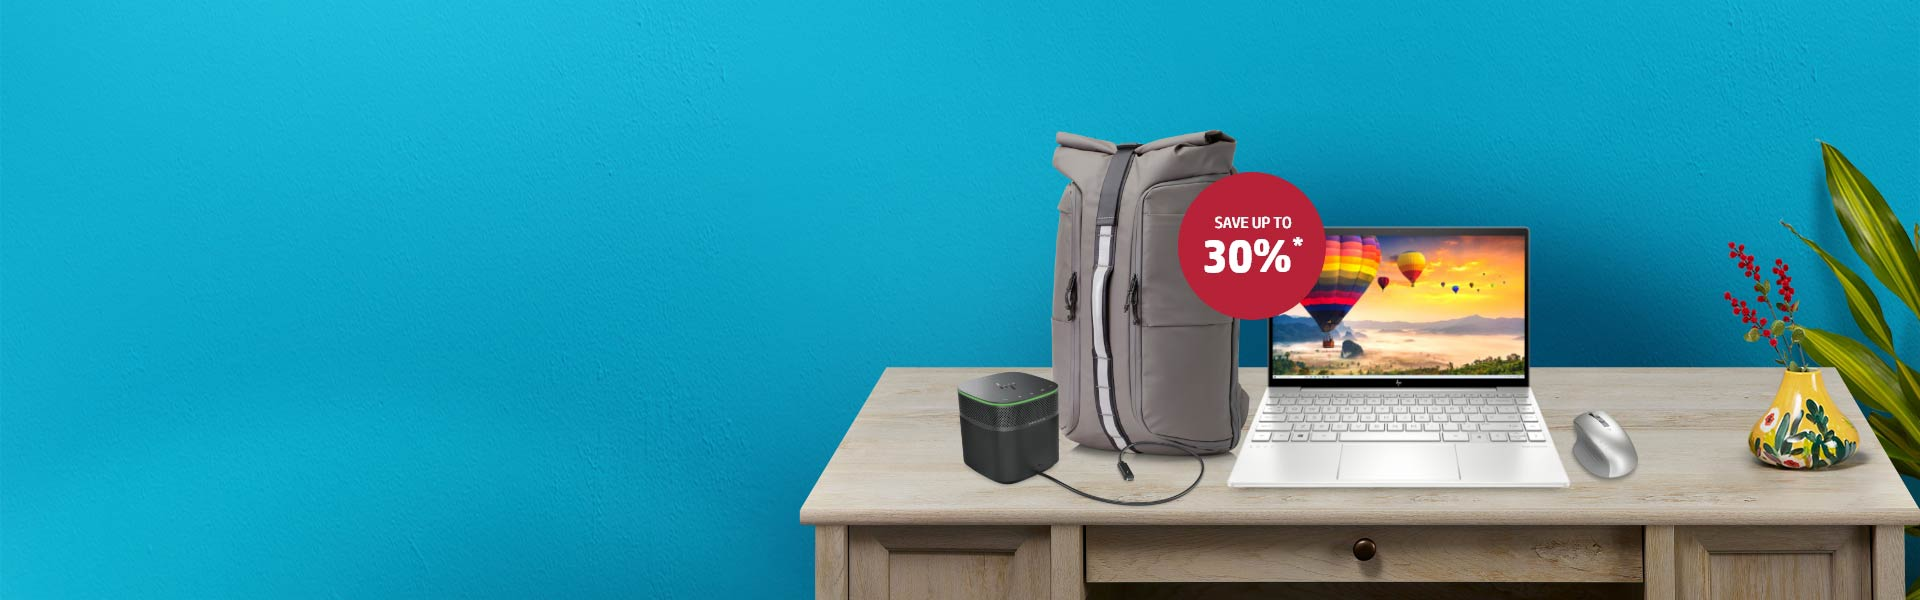 HP Accessory Promotions